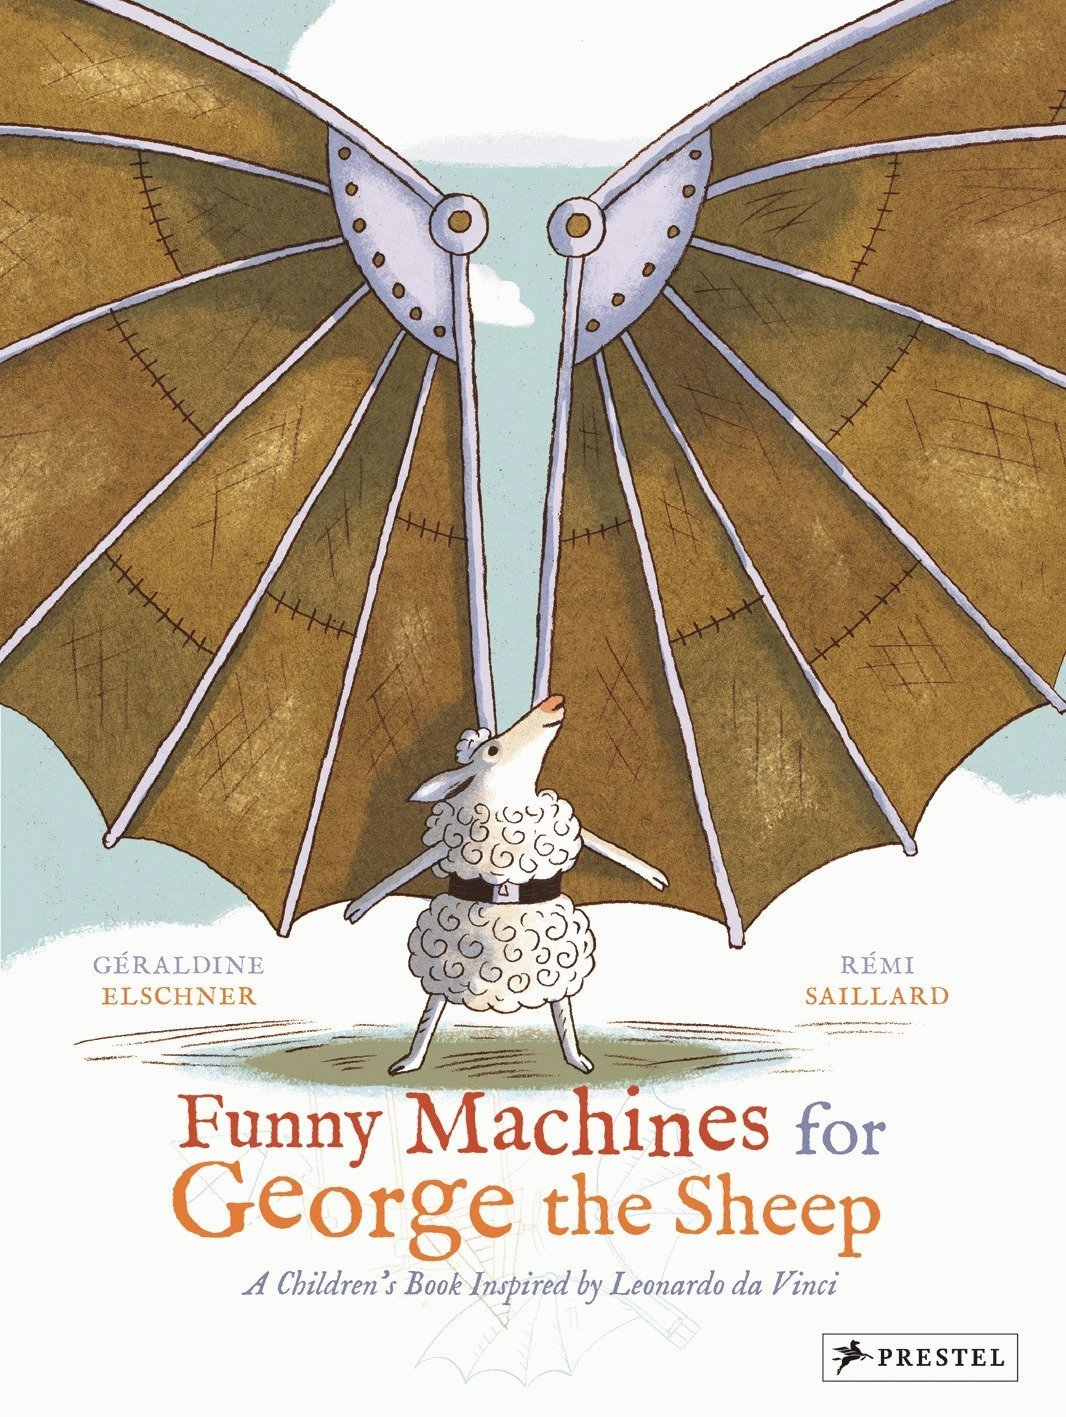 Amazon.com: Funny Machines for George the Sheep: A Children's Book ...